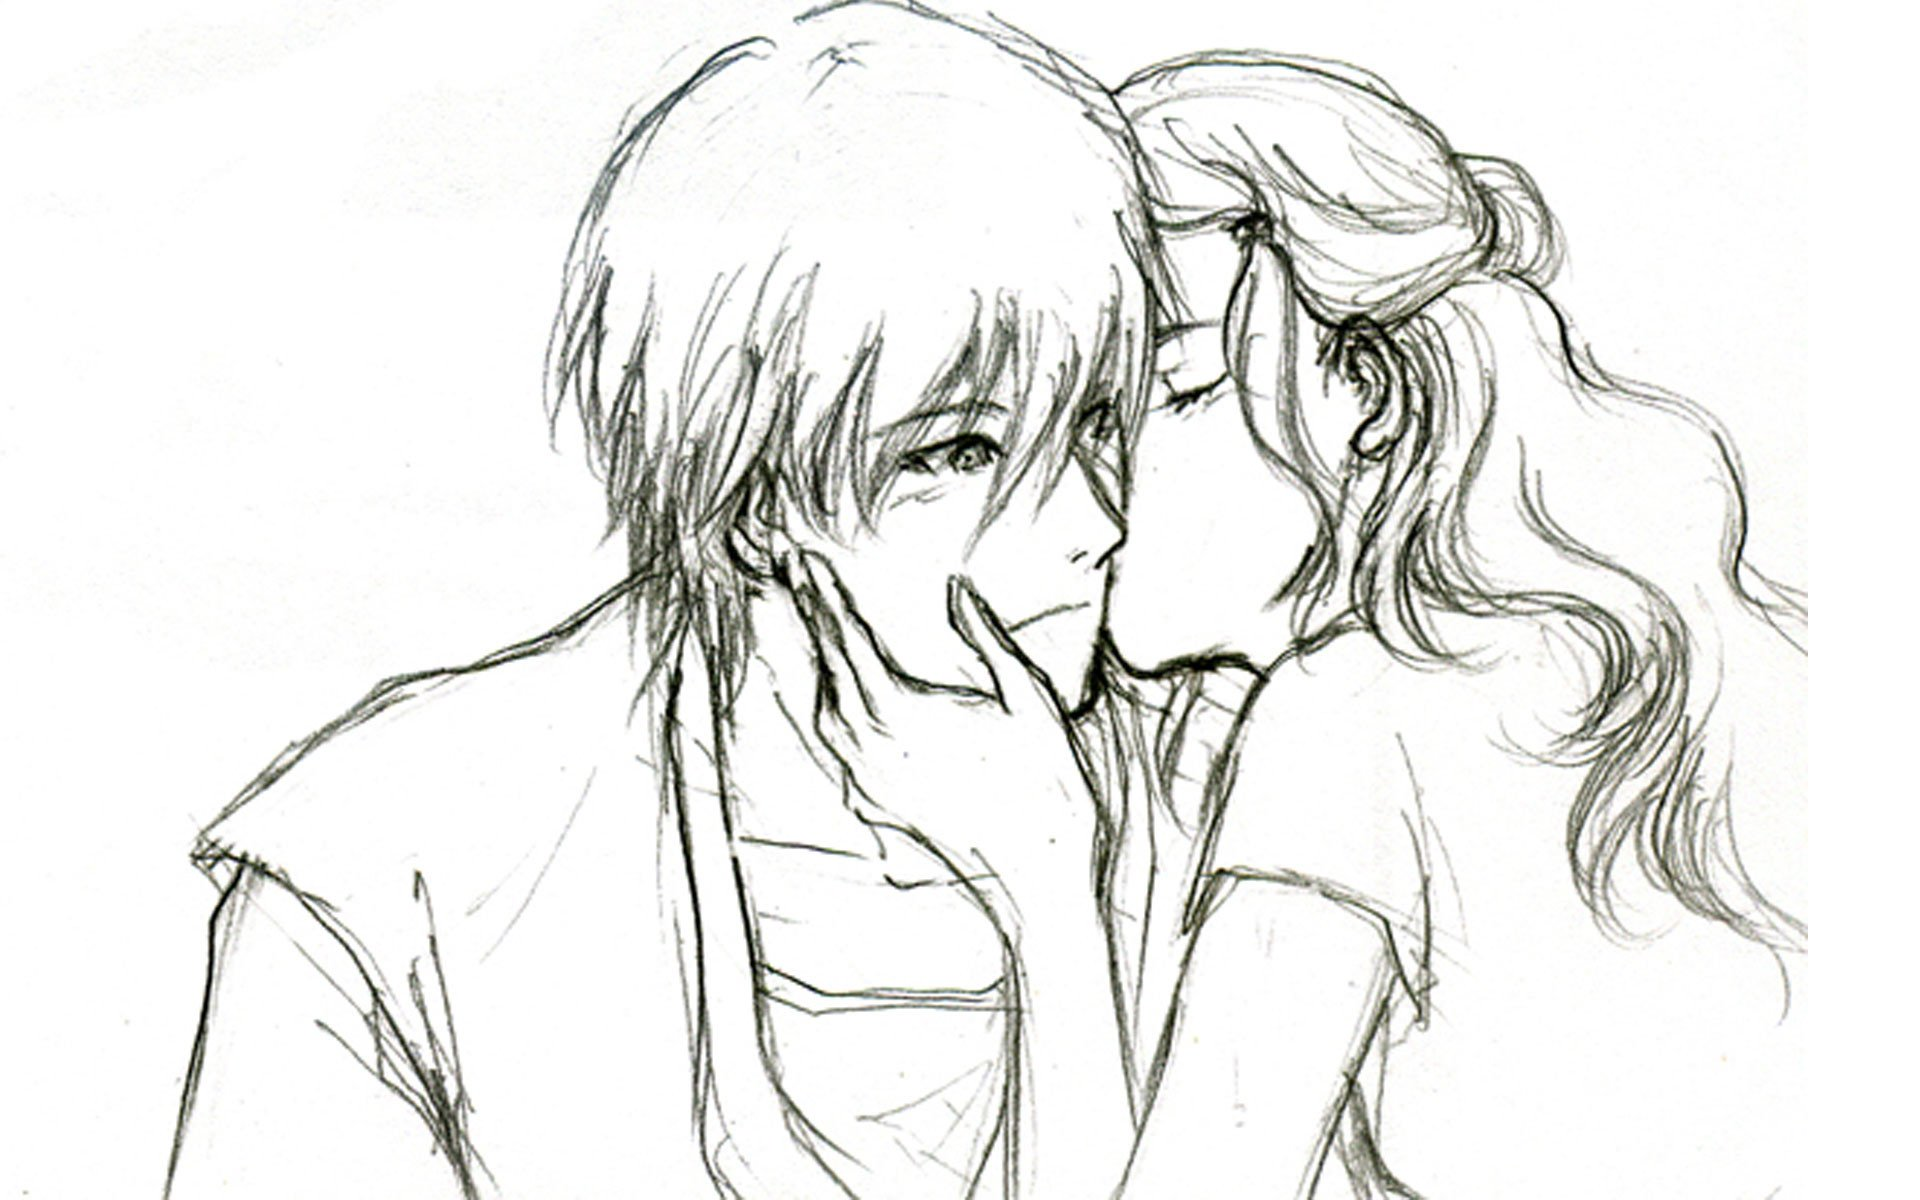 Cute Drawings for Him Cute Love Drawings Pencil Art Hd Romantic Sketch Wallpaper